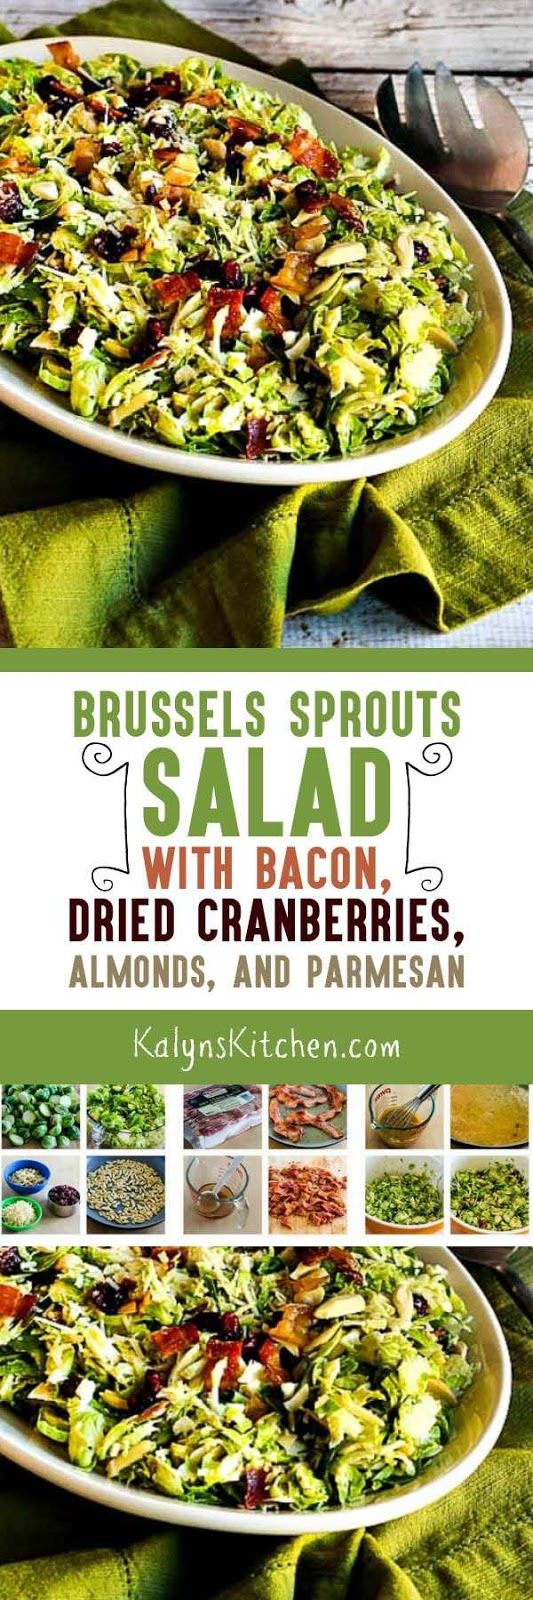 This Brussels Sprouts Salad with Bacon, Dried Cranberries, Almonds, and Parmesan may have some higher-calorie ingredients, but there's a lot of healthy brussels sprouts in this delicious salad! [found on KalynsKitchen.com]